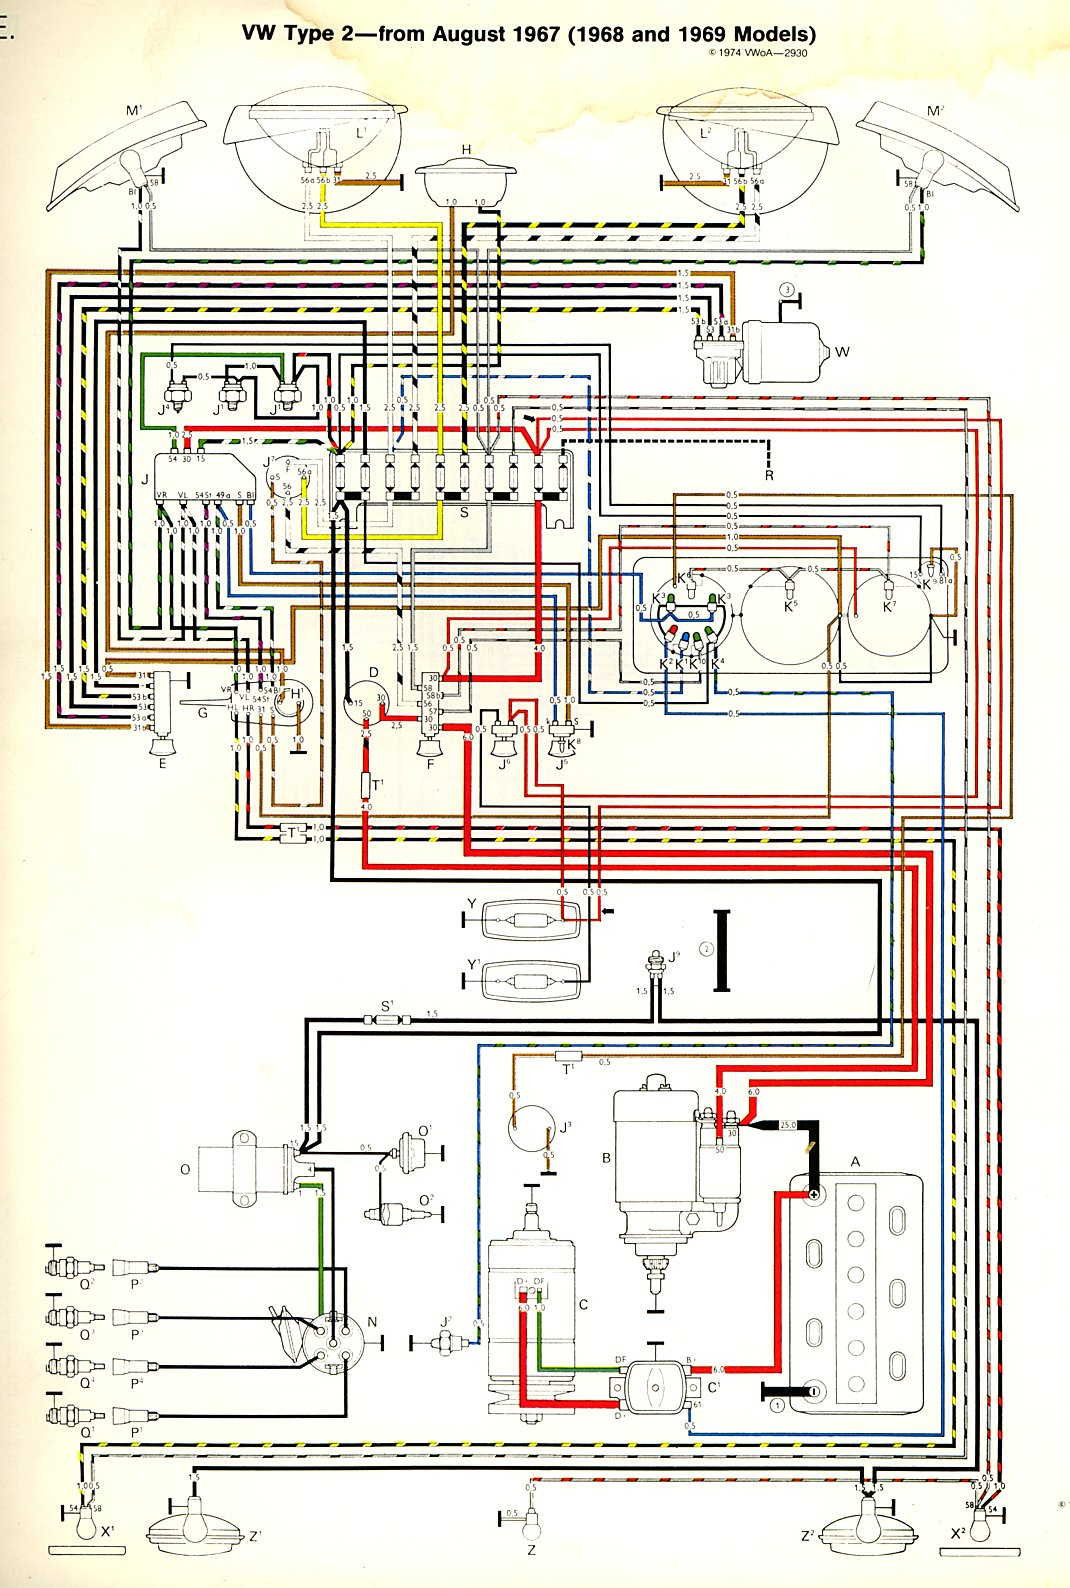 baybus_6869a 1968 69 bus wiring diagram thegoldenbug com bus wiring diagrams at eliteediting.co